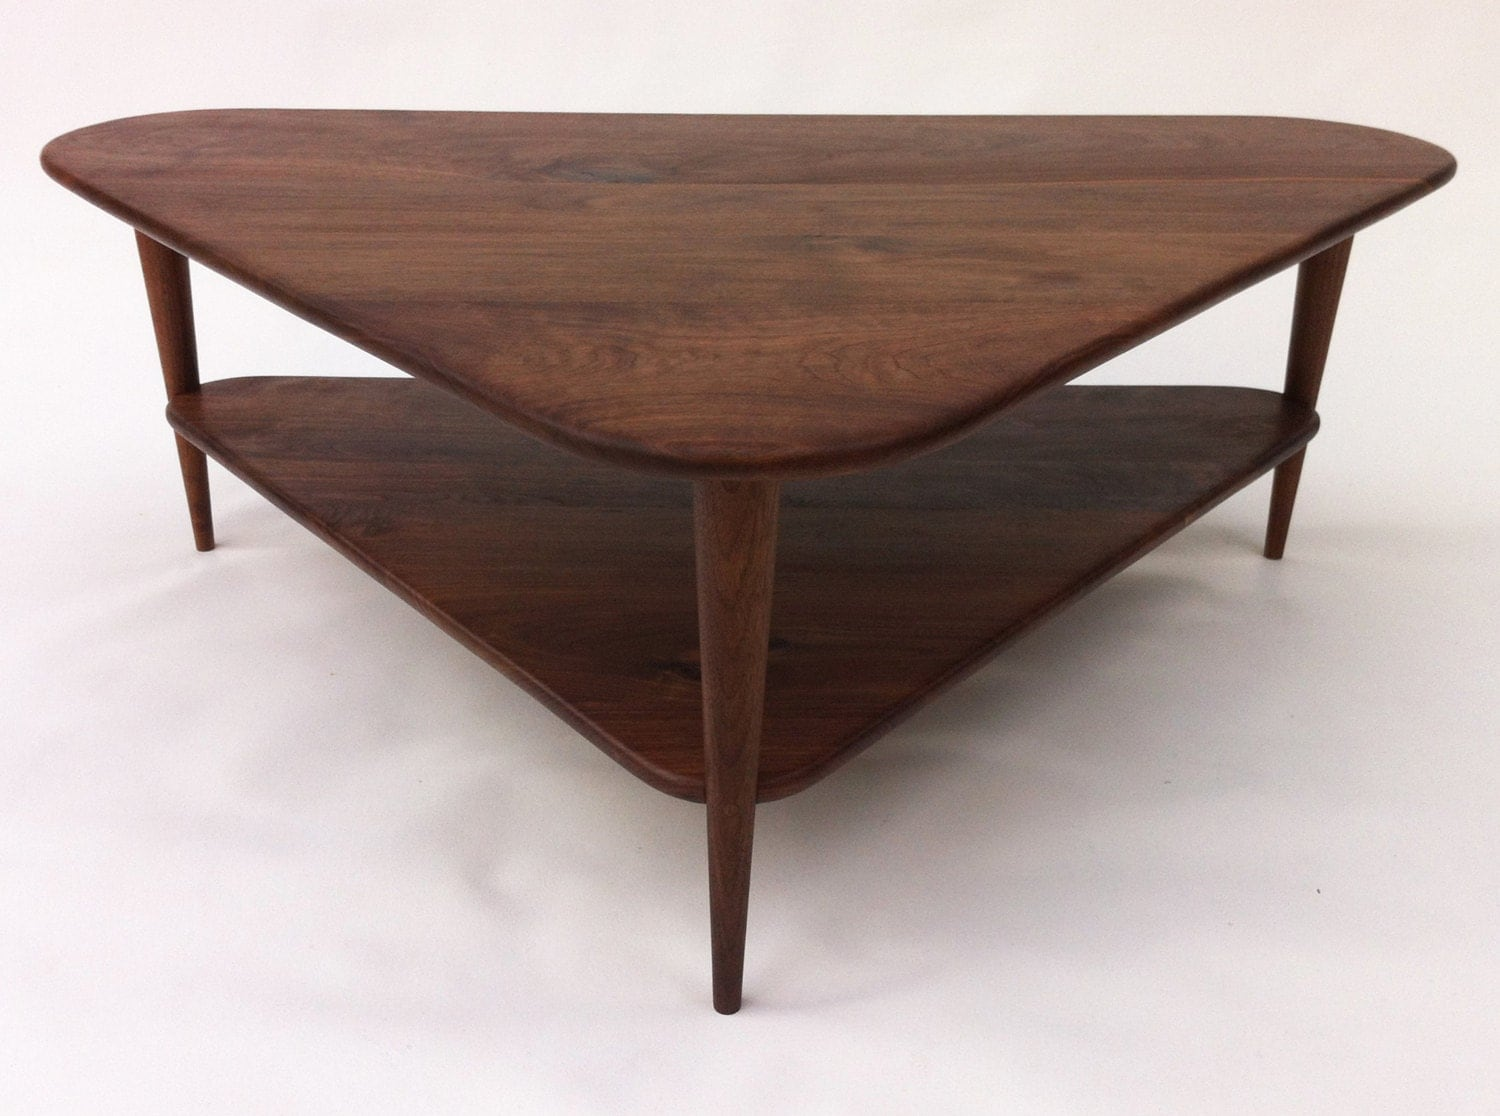 Triangle Wooden Dining Table 100 Mid Century Modern Surfboard Coffee Table Mid Century M Diy